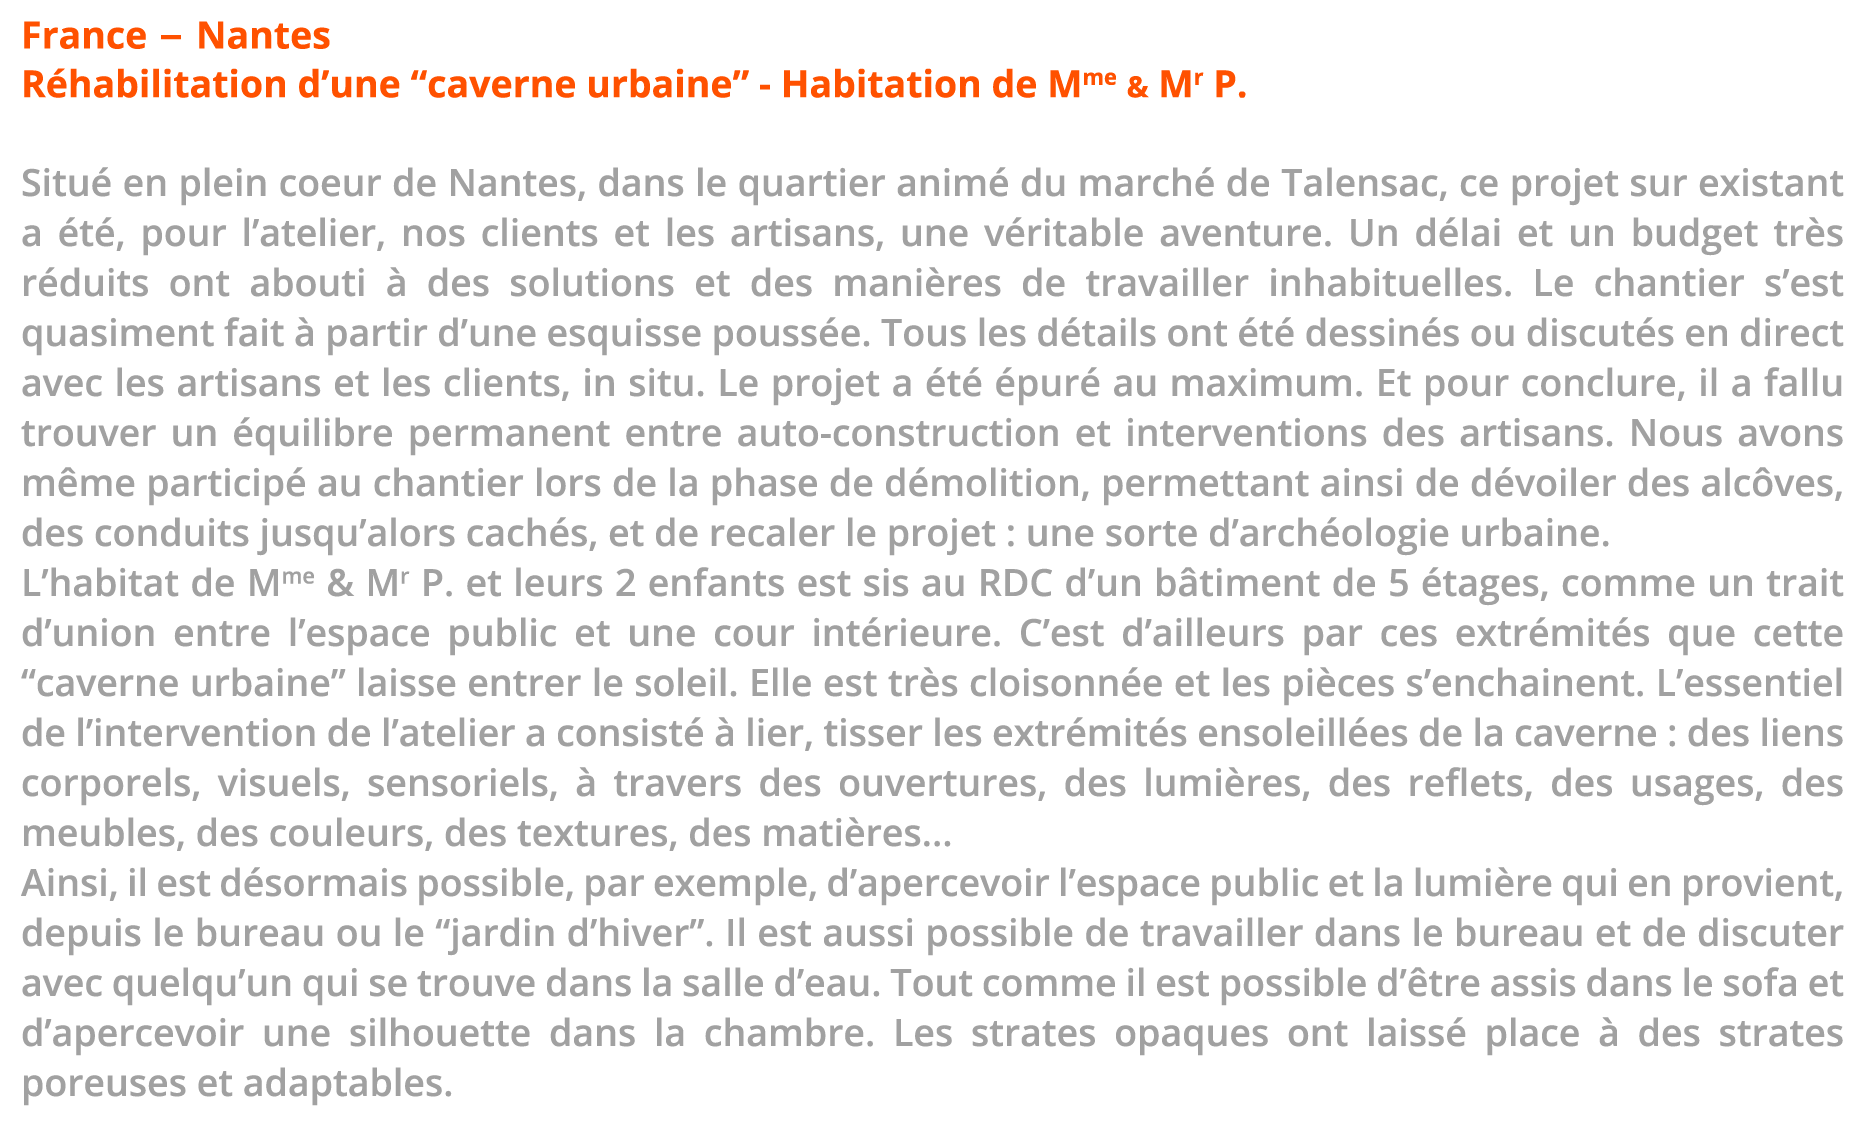 France-Avrille-Texte1.png